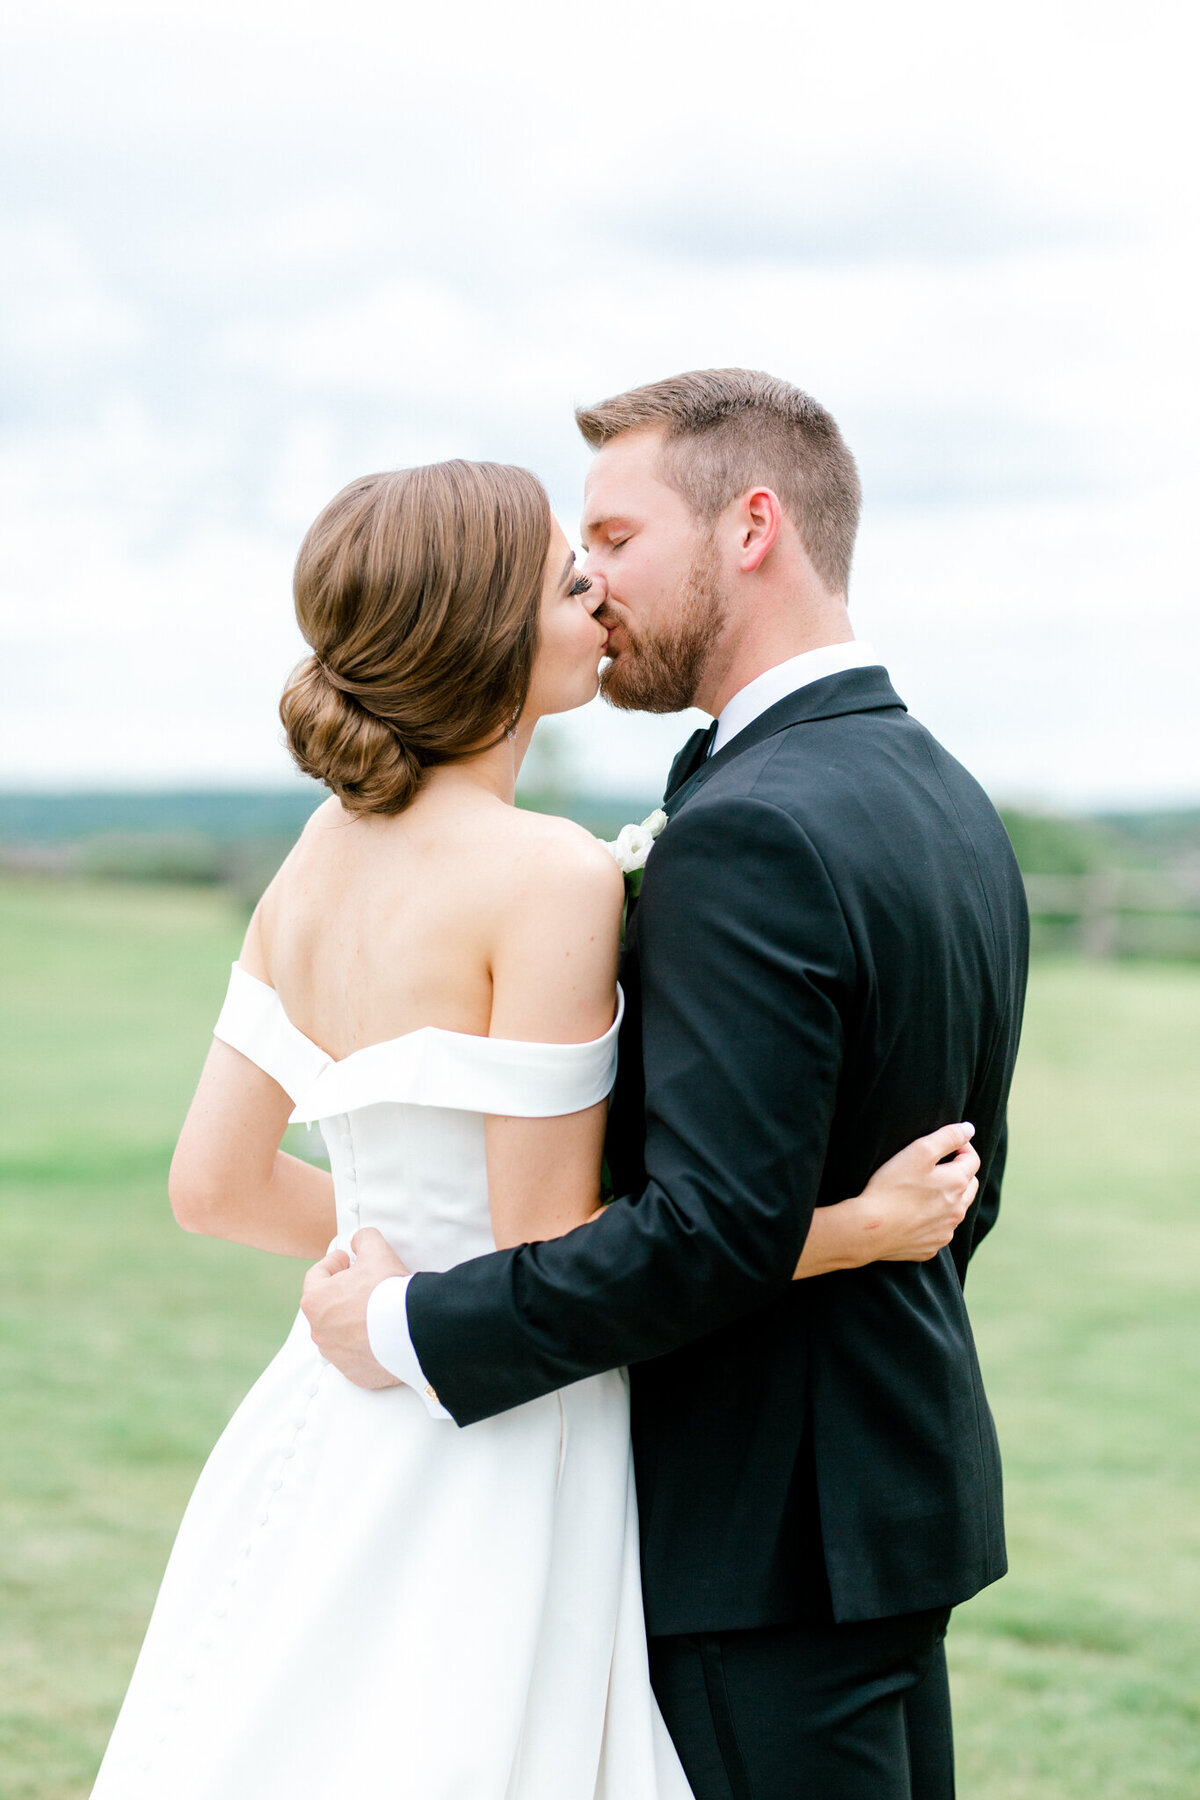 Lexi Broughton & Garrett Greer Wedding at Dove Ridge Vineyards | Sami Kathryn Photography | Dallas Wedding Photography-82